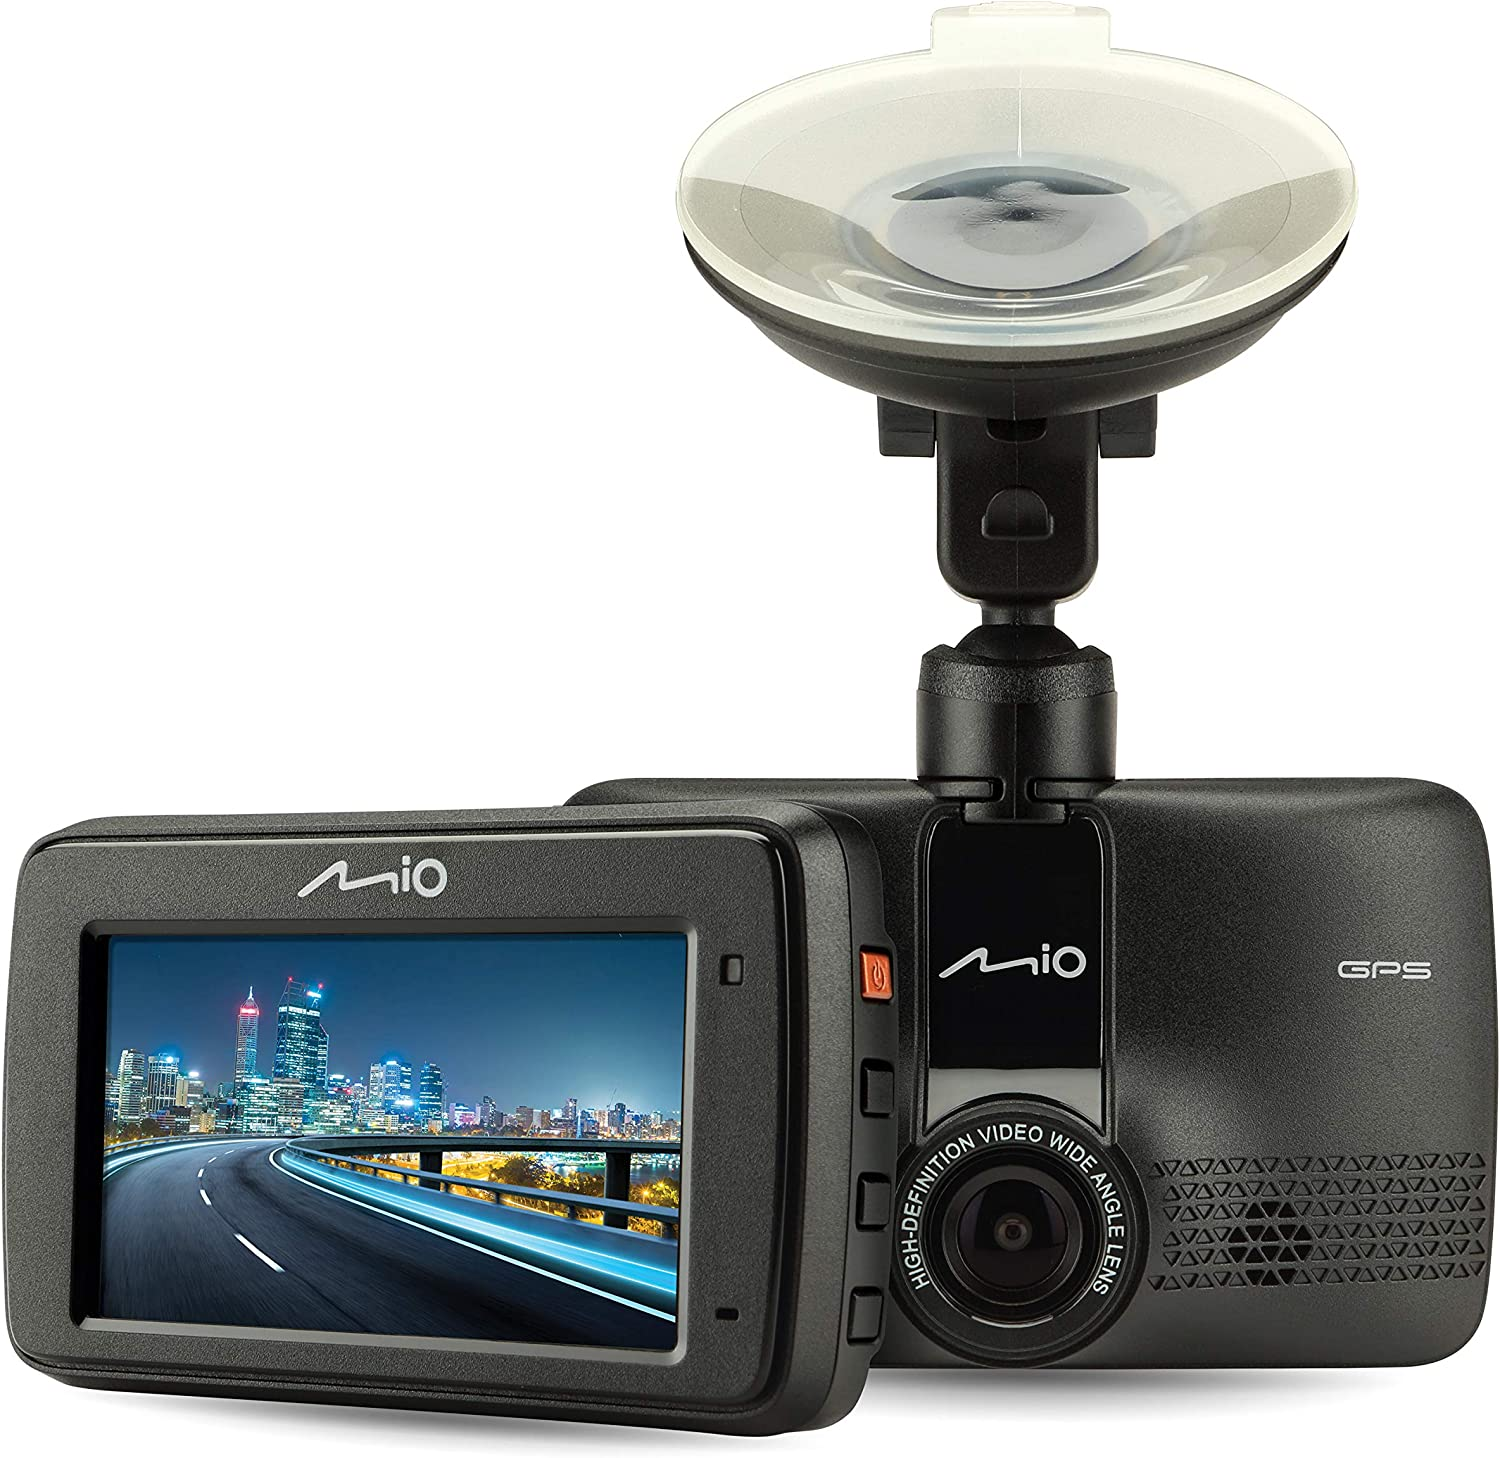 Mio MiVue 731-GPS Mounted Car Security Dash Camera with 1080p Full HD Recording, 130° Wide-Angle Lens - Includes Built-in GPS, G-Sensor for Emergency Backup & Safety Alerts